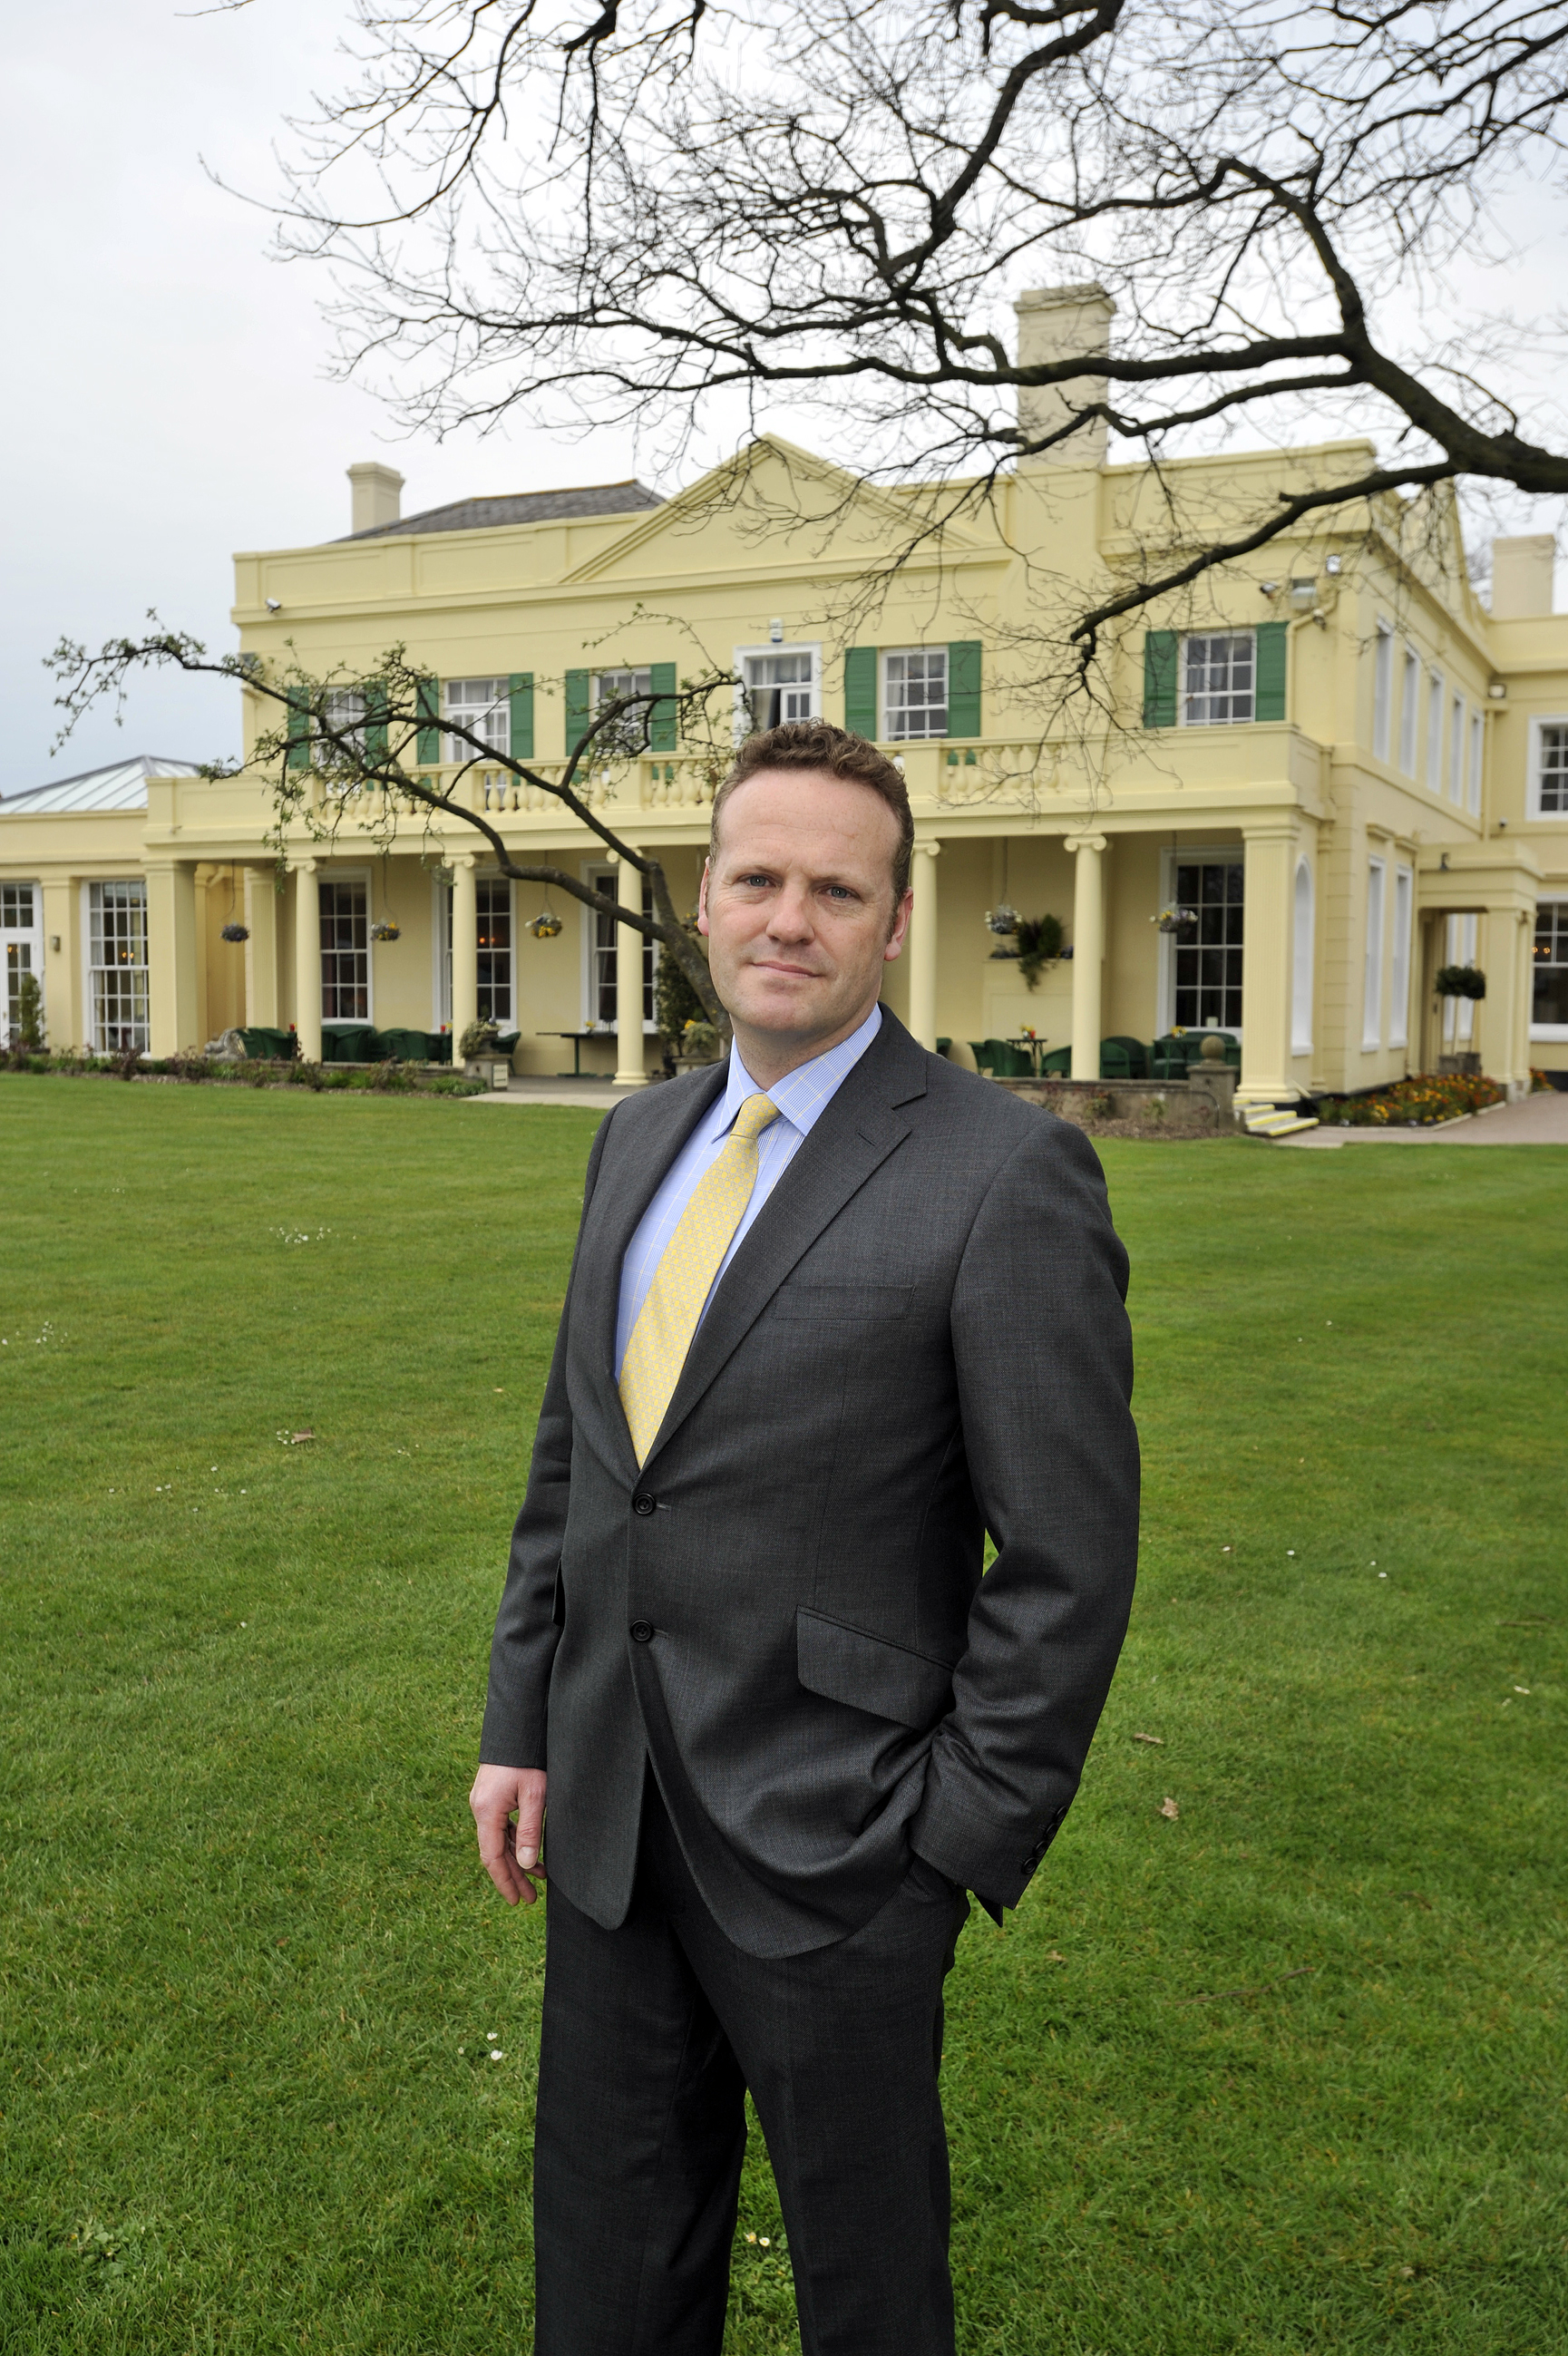 Cutting bills - managing partner David keddie outside the wedding and event venue, where 475 sq m of the grounds will be covered in solar panels